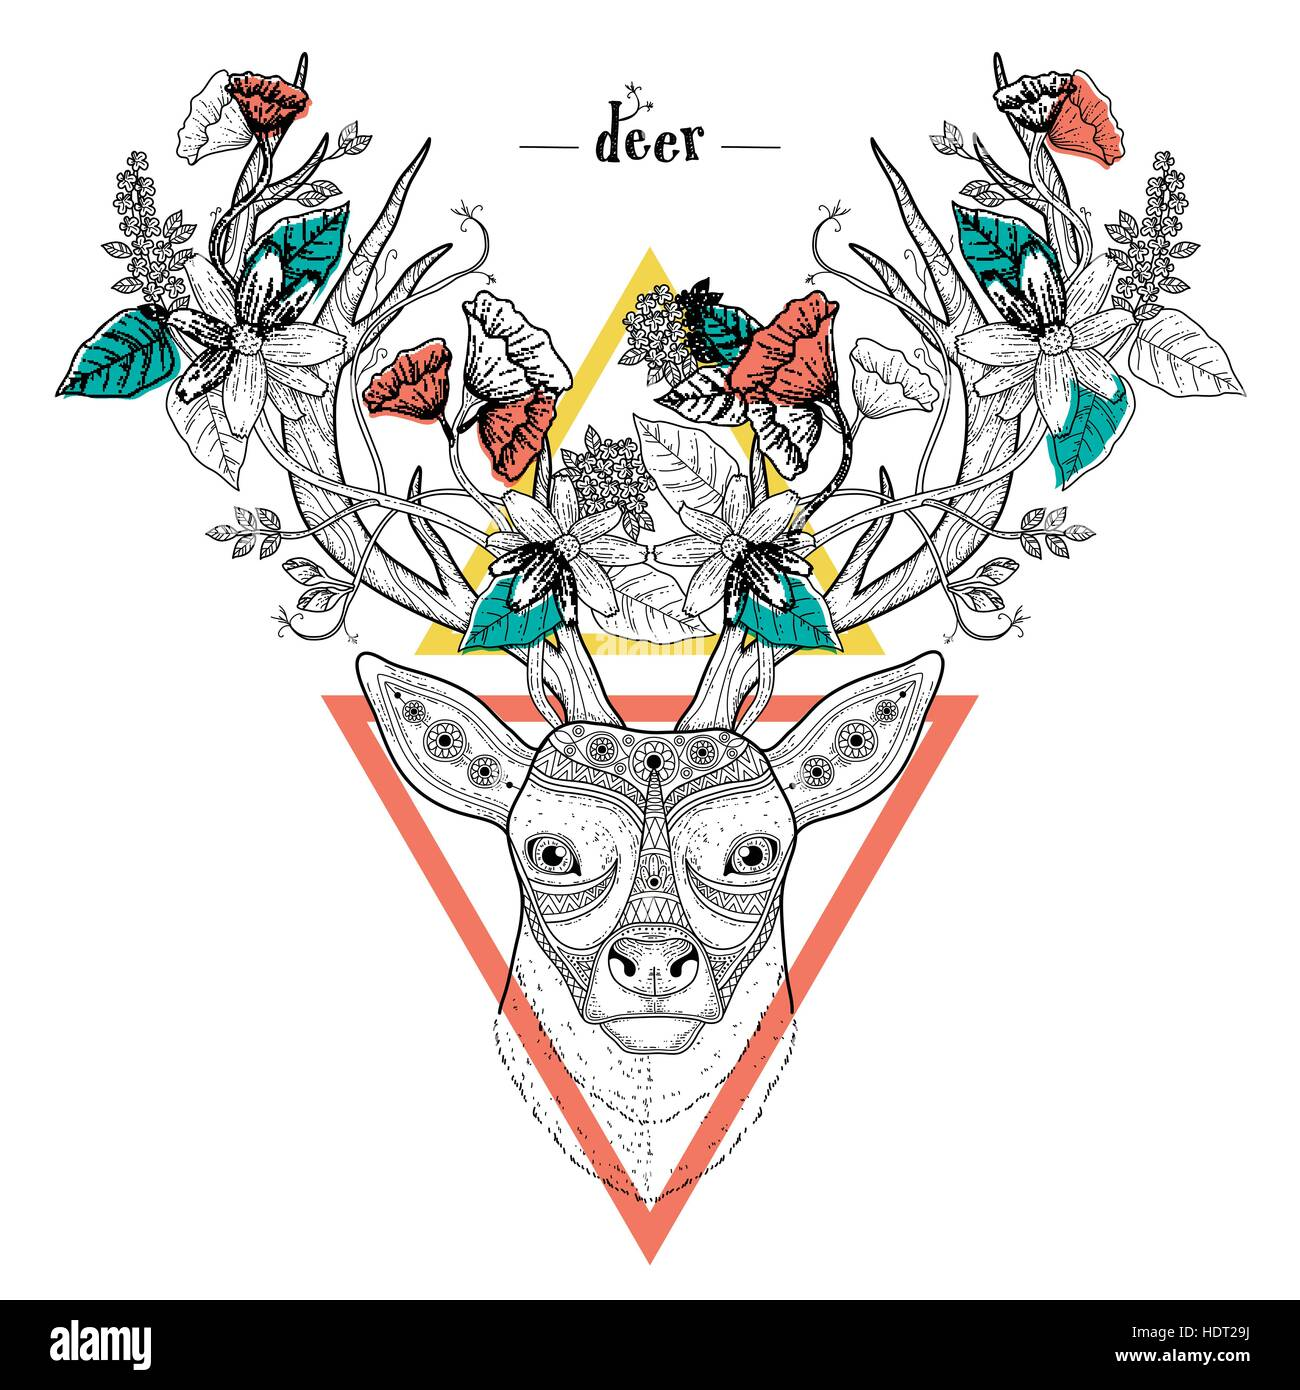 Elegant Deer Head Coloring Page In Exquisite Style